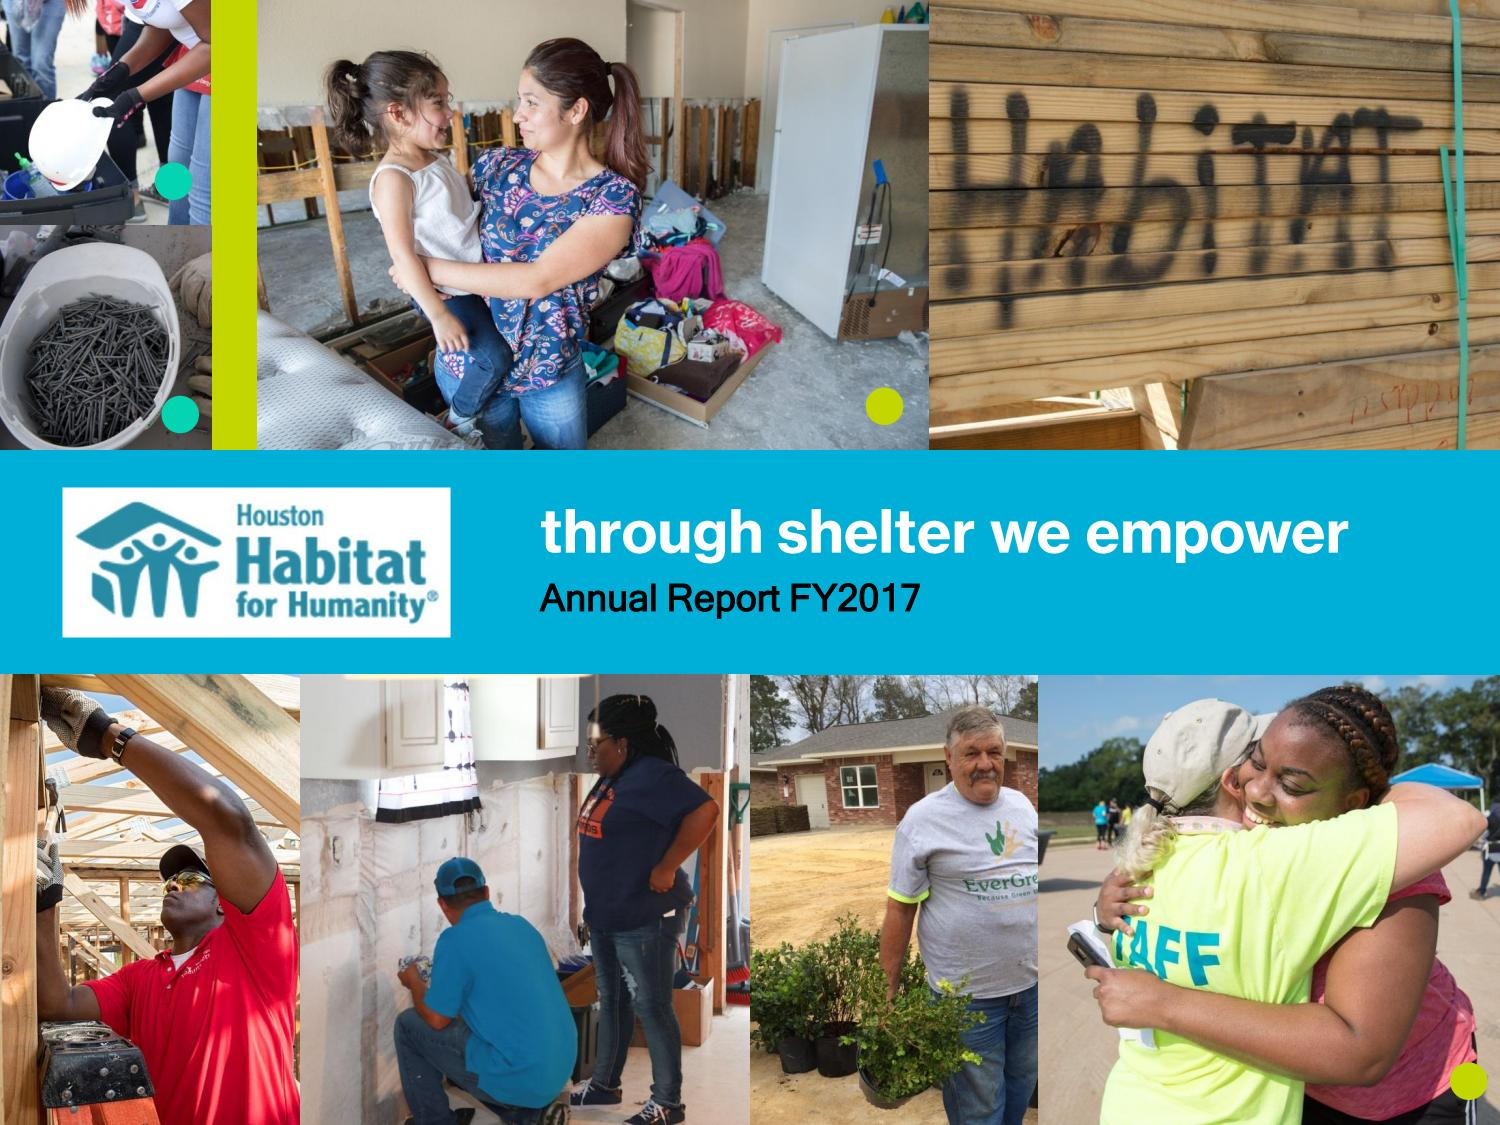 Annual Report 2017 Houston Habitat For Humanity By Hhfhcommunications Issuu